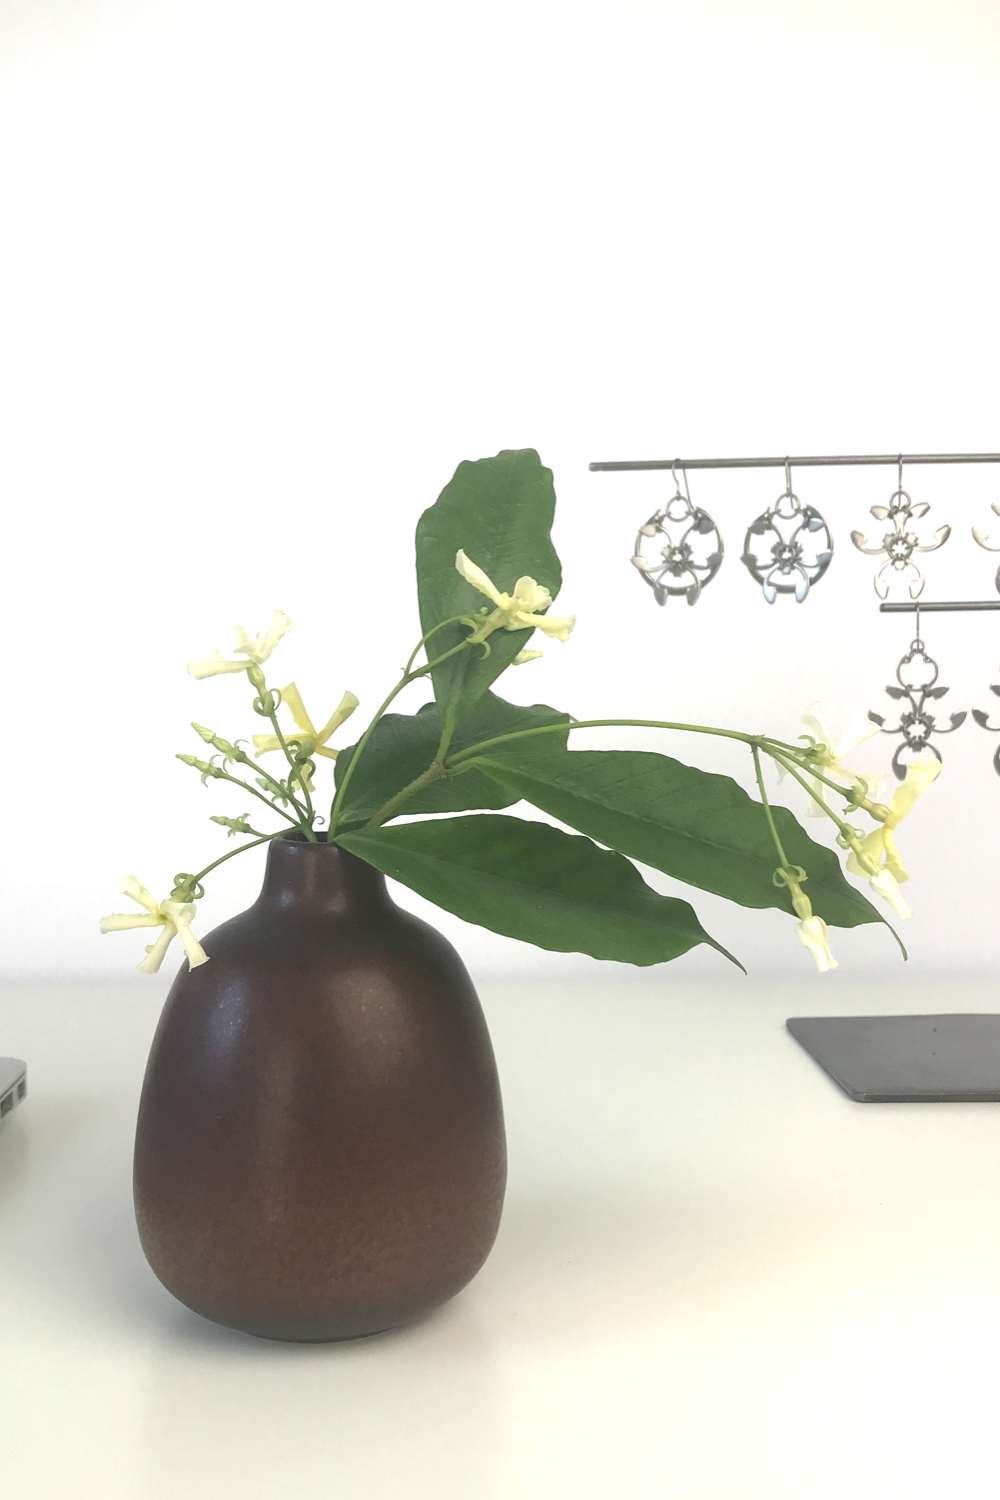 Pale yellow star jasmine (Trachelospermum asiaticum) flowers and green leaves in a bud vase by Heath Ceramics on a desk in Wraptillion's studio workspace, with the modern botanical-inspired Rose Window Earrings, Trellis Earrings, and Garland Earrings.